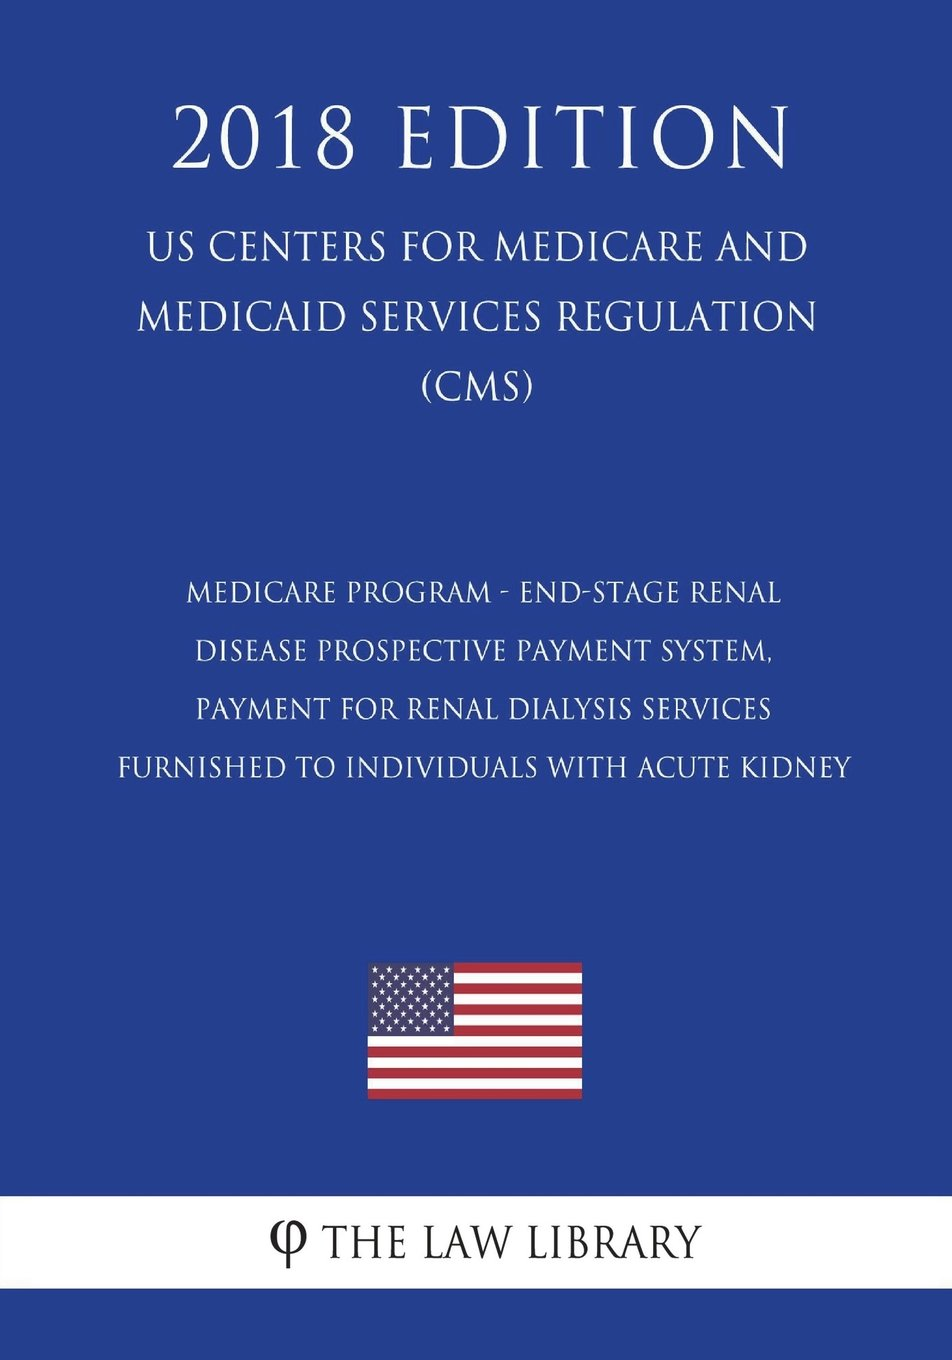 Download Medicare Program - End-Stage Renal Disease Prospective Payment System, Payment for Renal Dialysis Services Furnished to Individuals with Acute Kidney ... Services Regulation) (CMS) (2018 Edition) pdf epub